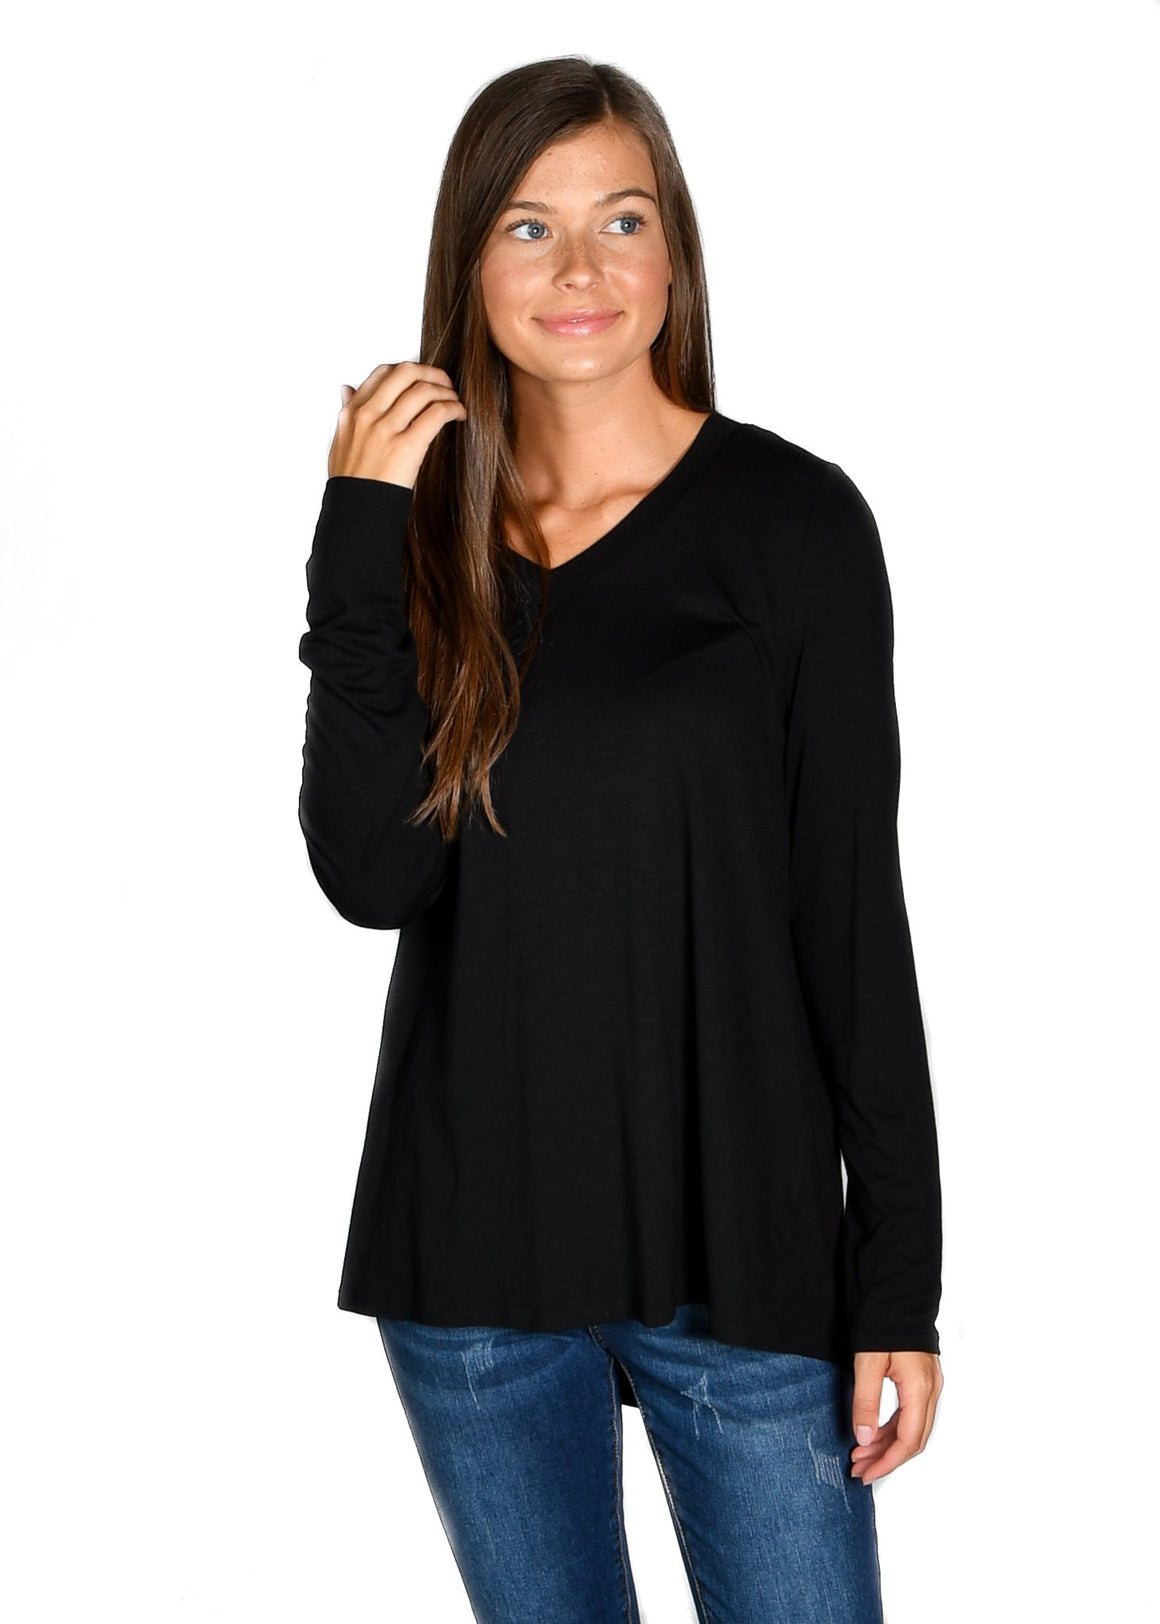 Black Long Sleeve V-Neck Tee - Warehouse Apparel